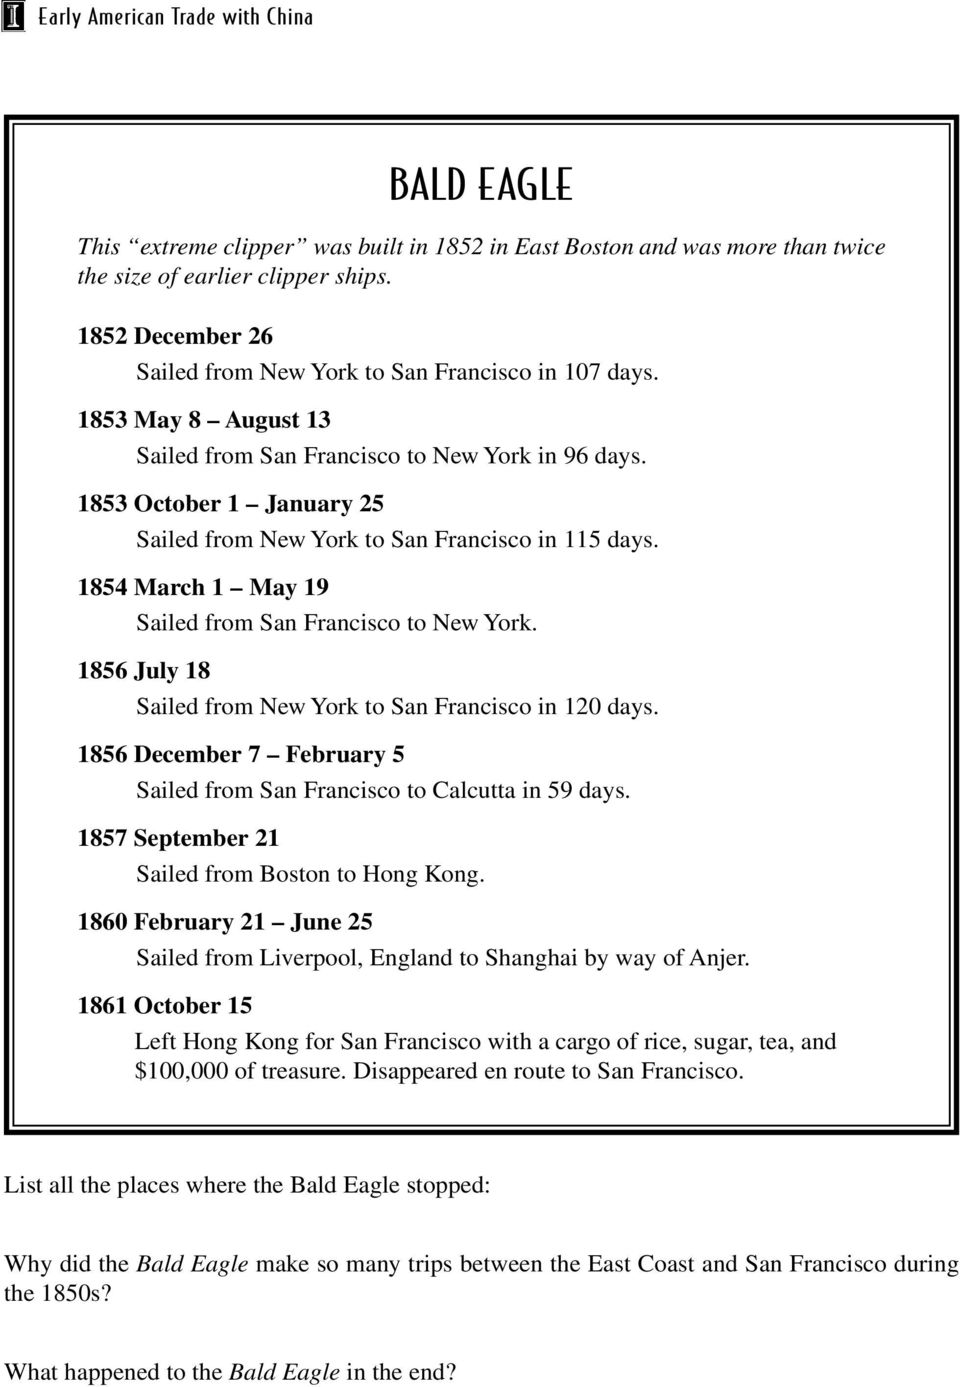 1856 July 18 Sailed from New York to San Francisco in 120 days. 1856 December 7 February 5 Calcutta in 59 days. 1857 September 21 Sailed from Boston to Hong Kong.